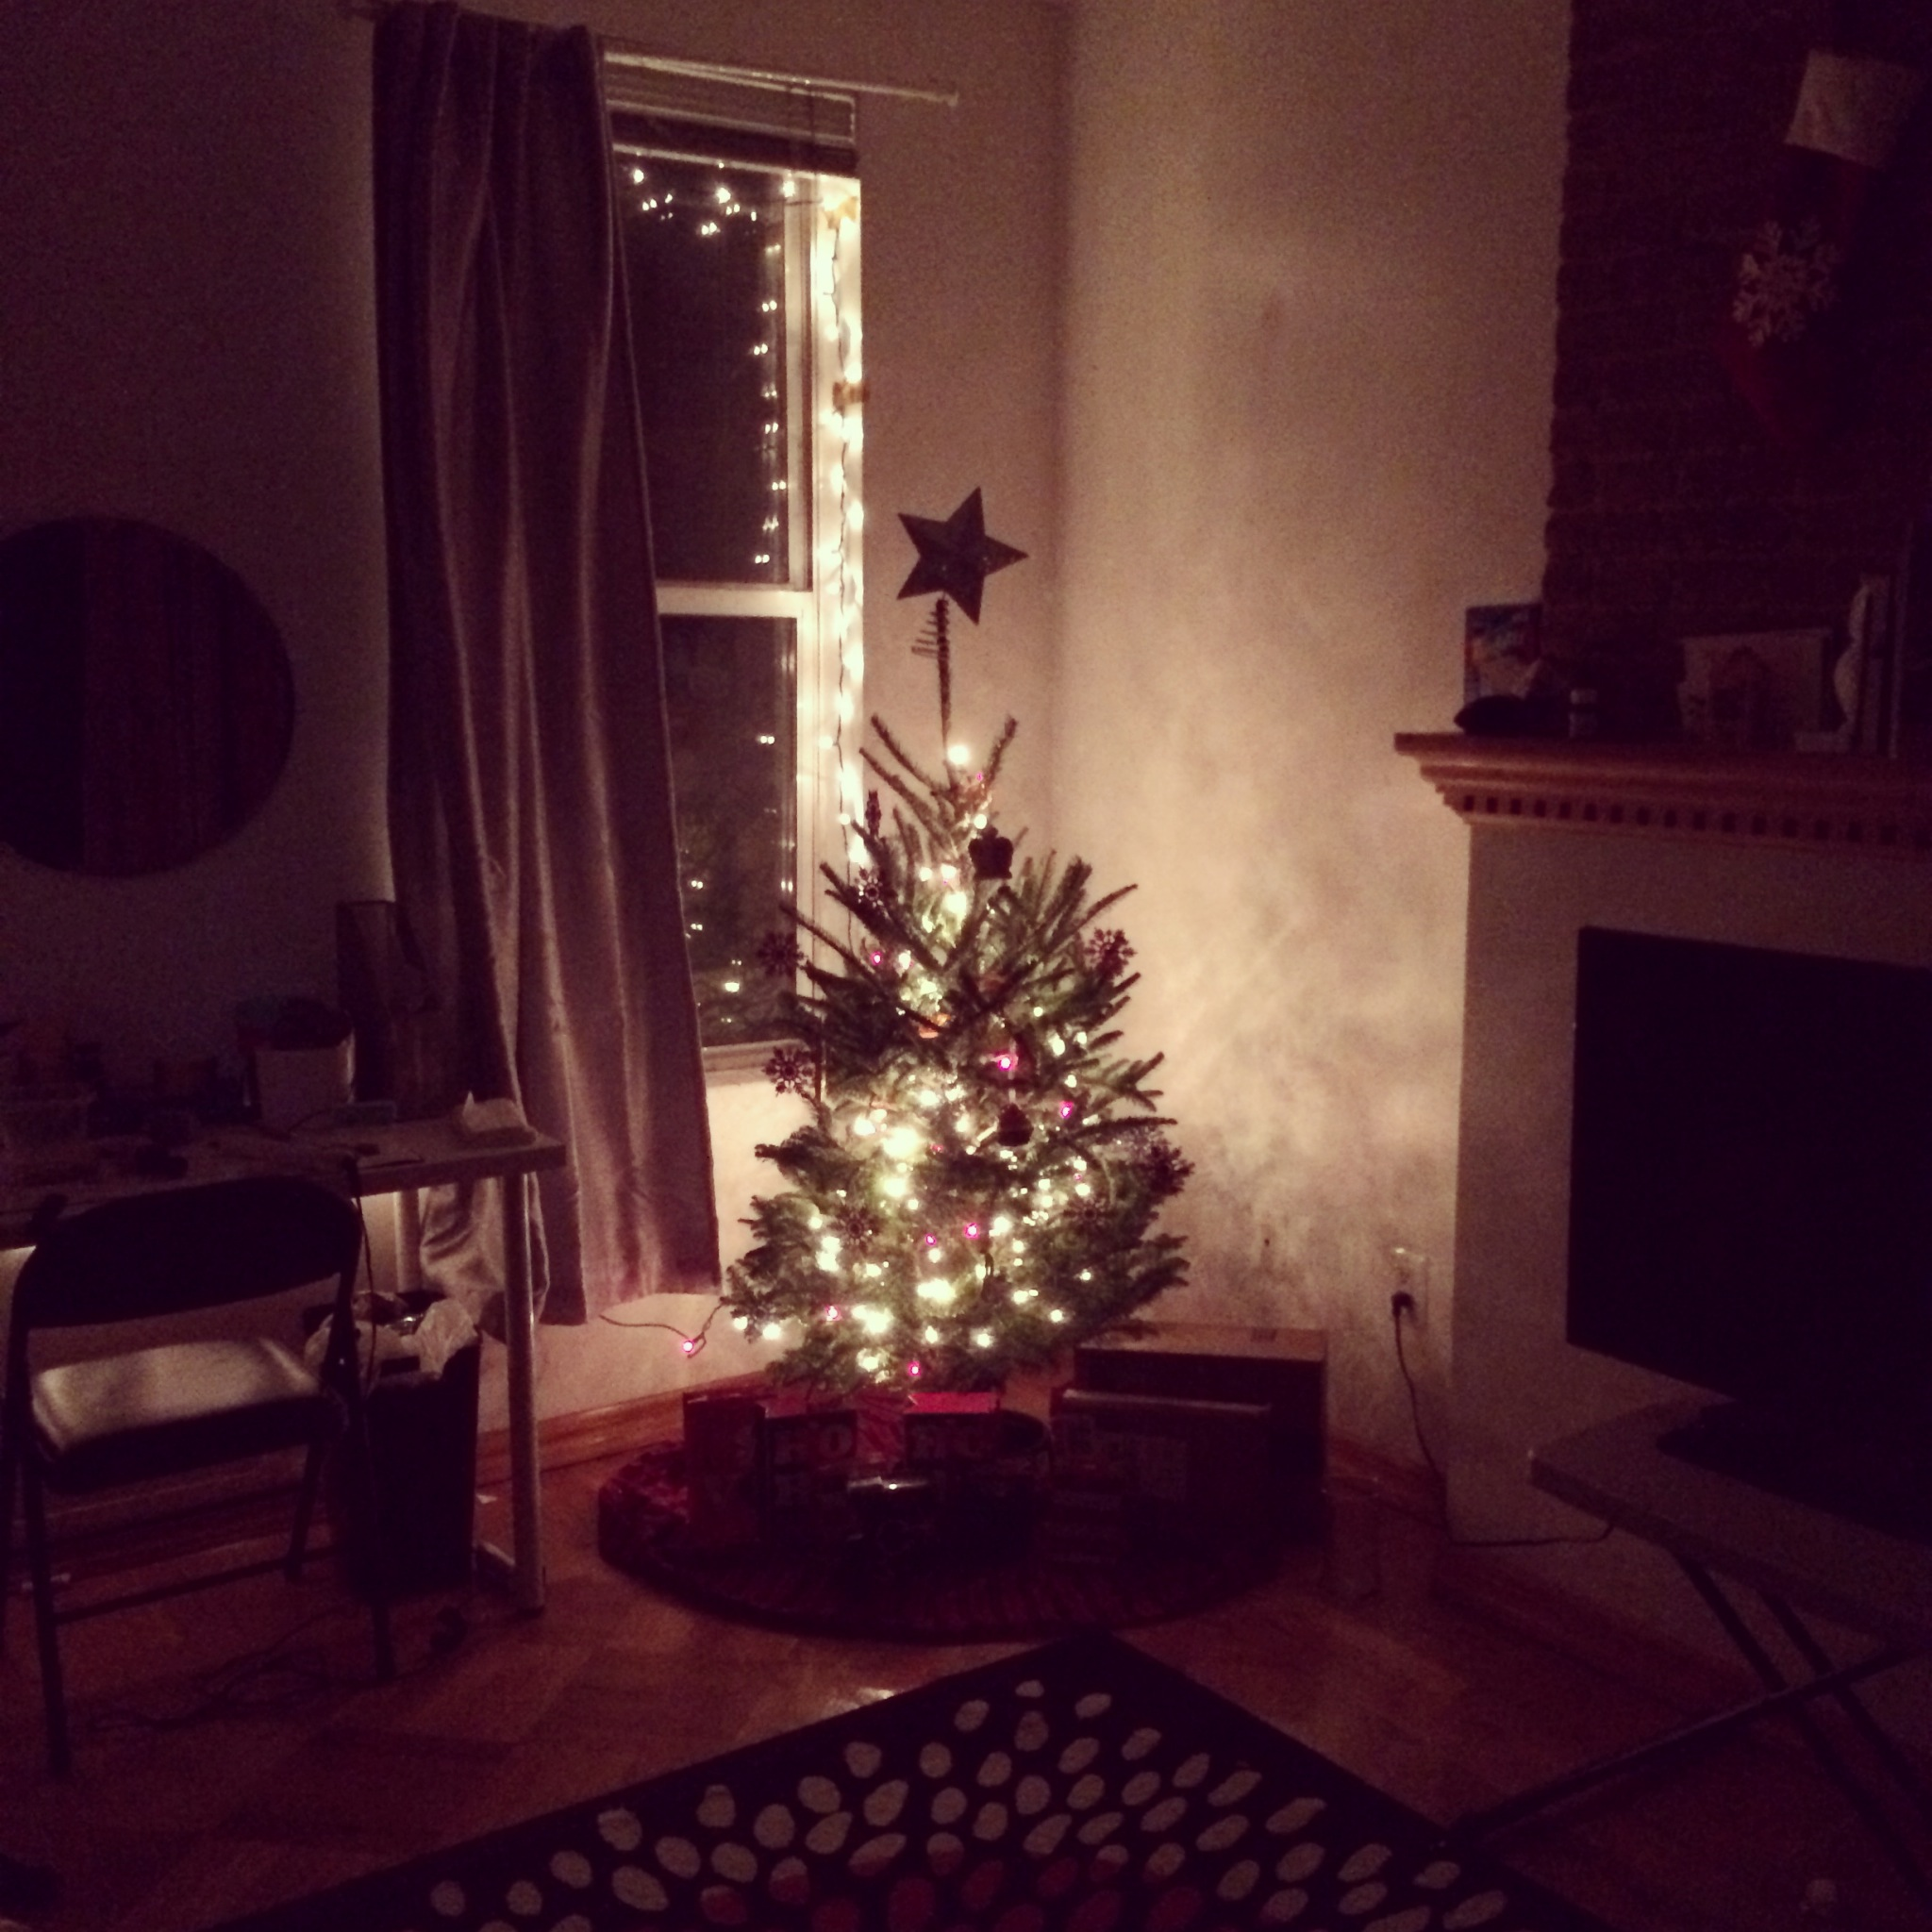 Oh Christmas Tree, Oh Christmas Tree - from the past. 1052